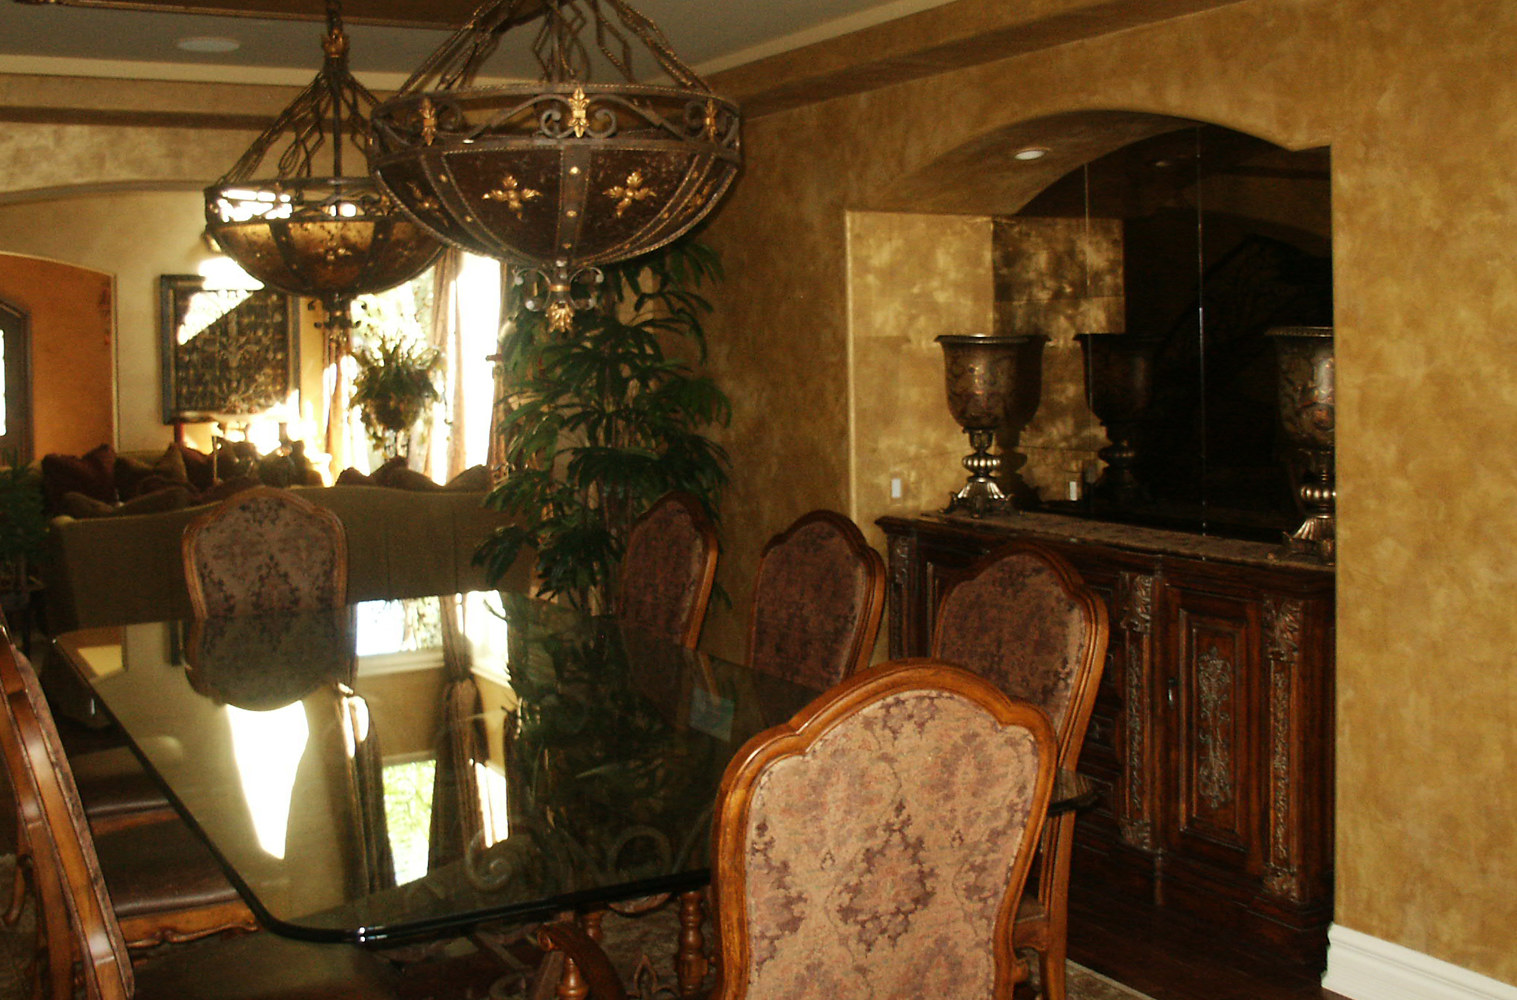 Anaheim Hills Metallic Plaster Dining Room web by Robert Milling